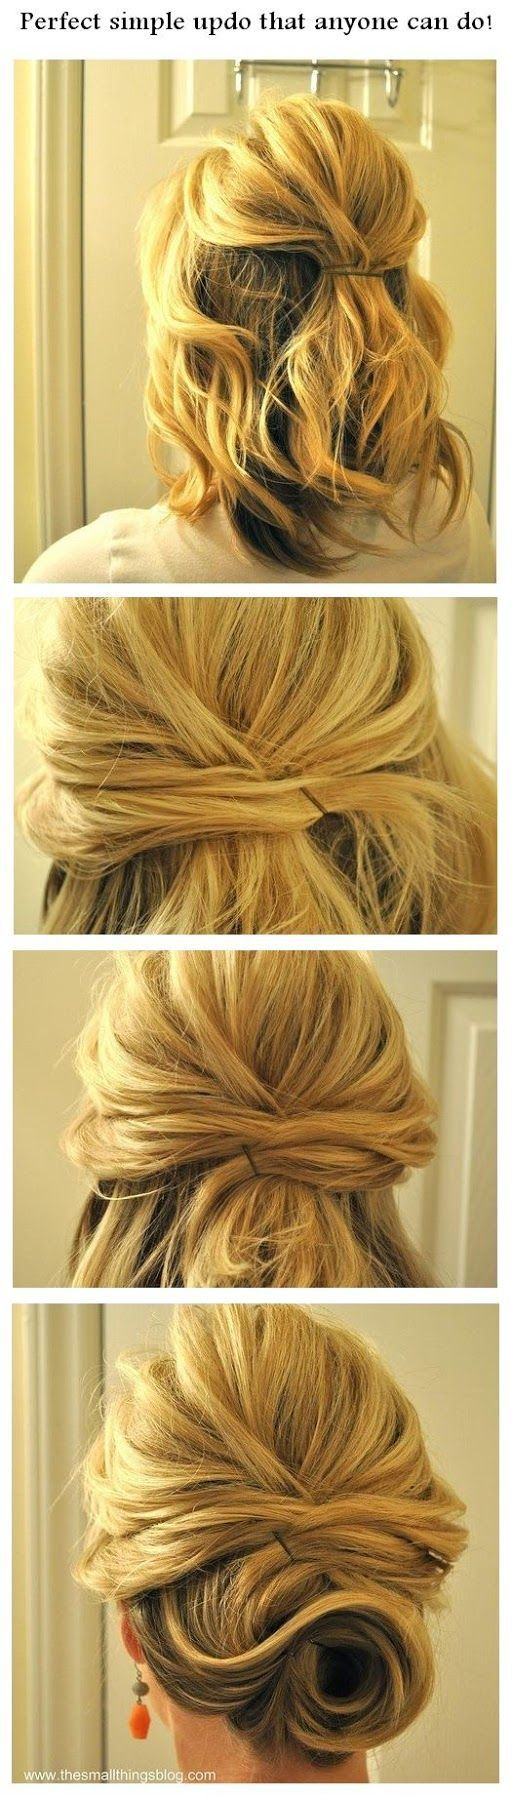 Perfect simple updo that anyone can do! | hairstyles tutorial #hair #beauty #hairstyles